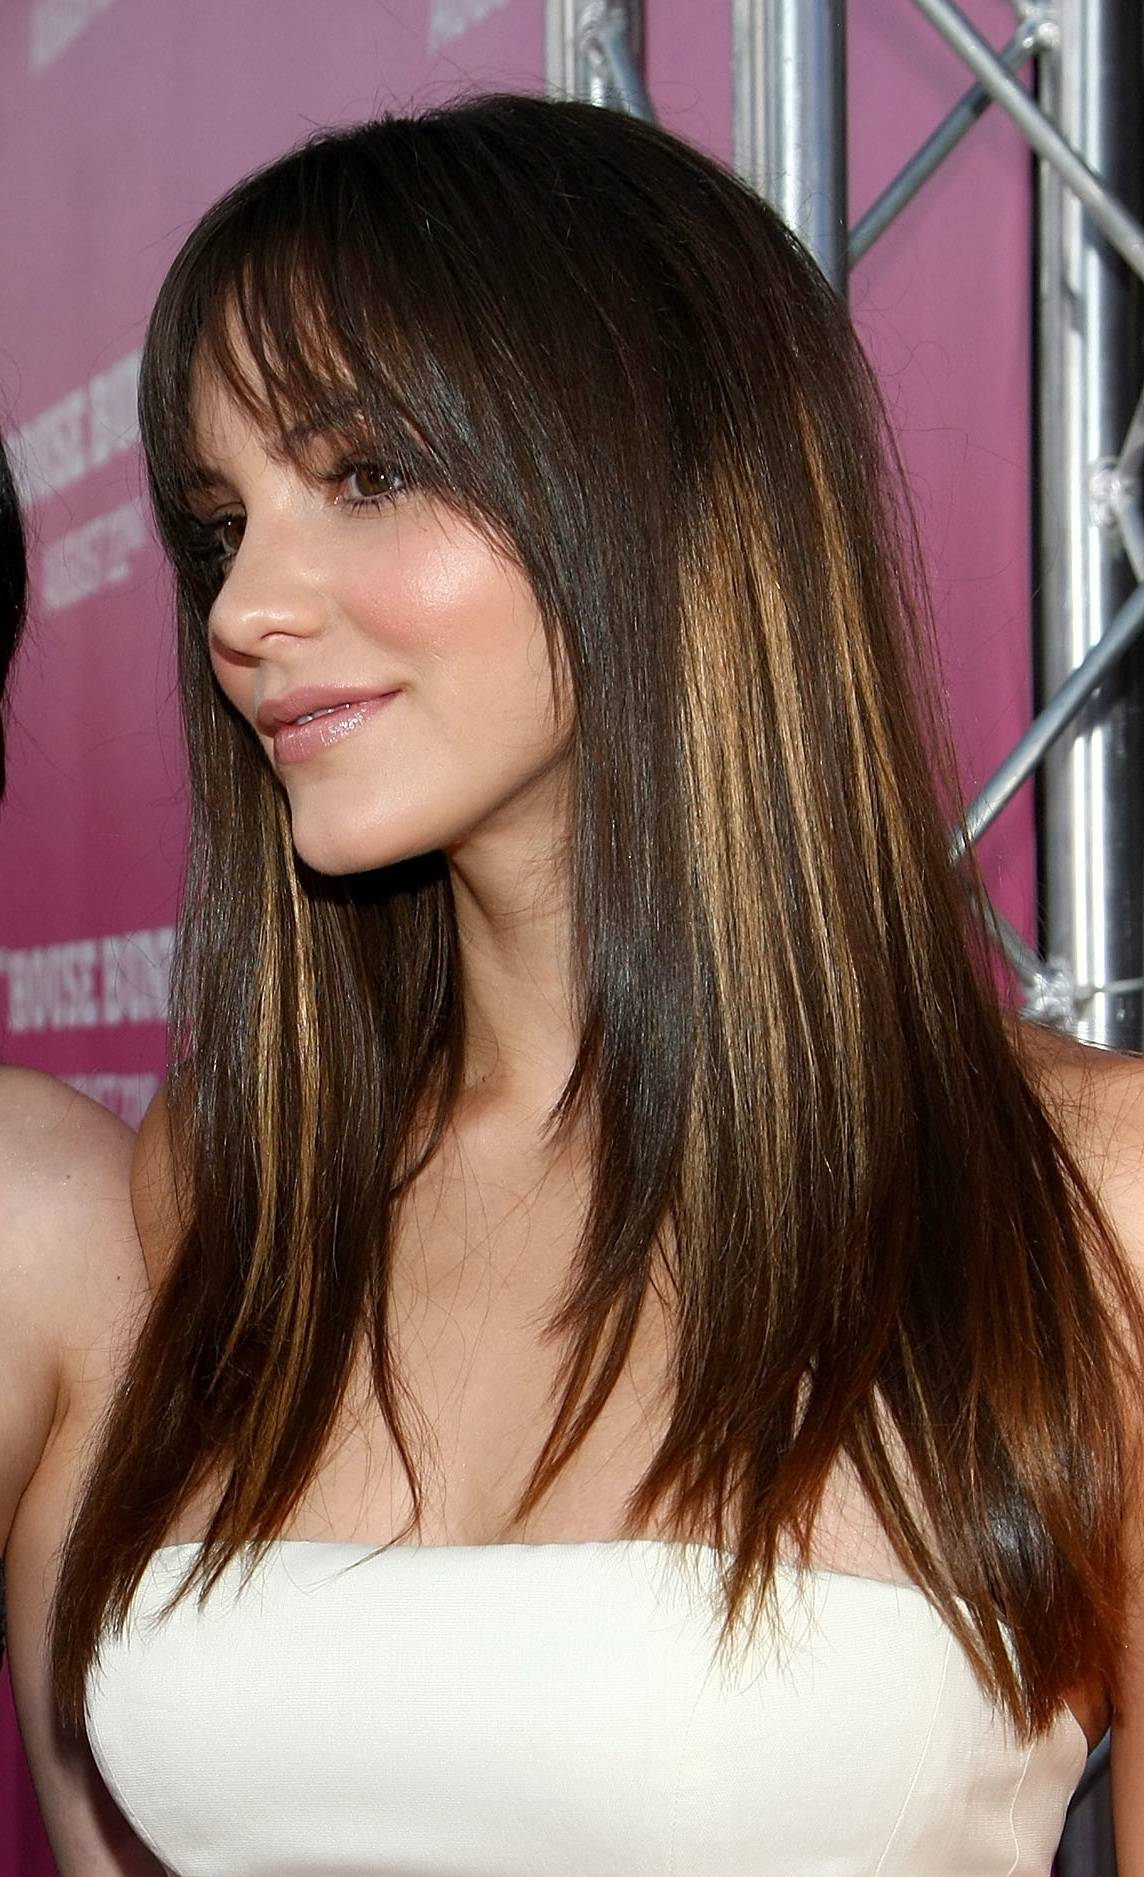 Short Natural Straight Hairstyles Short Hairstyles For Women And Man